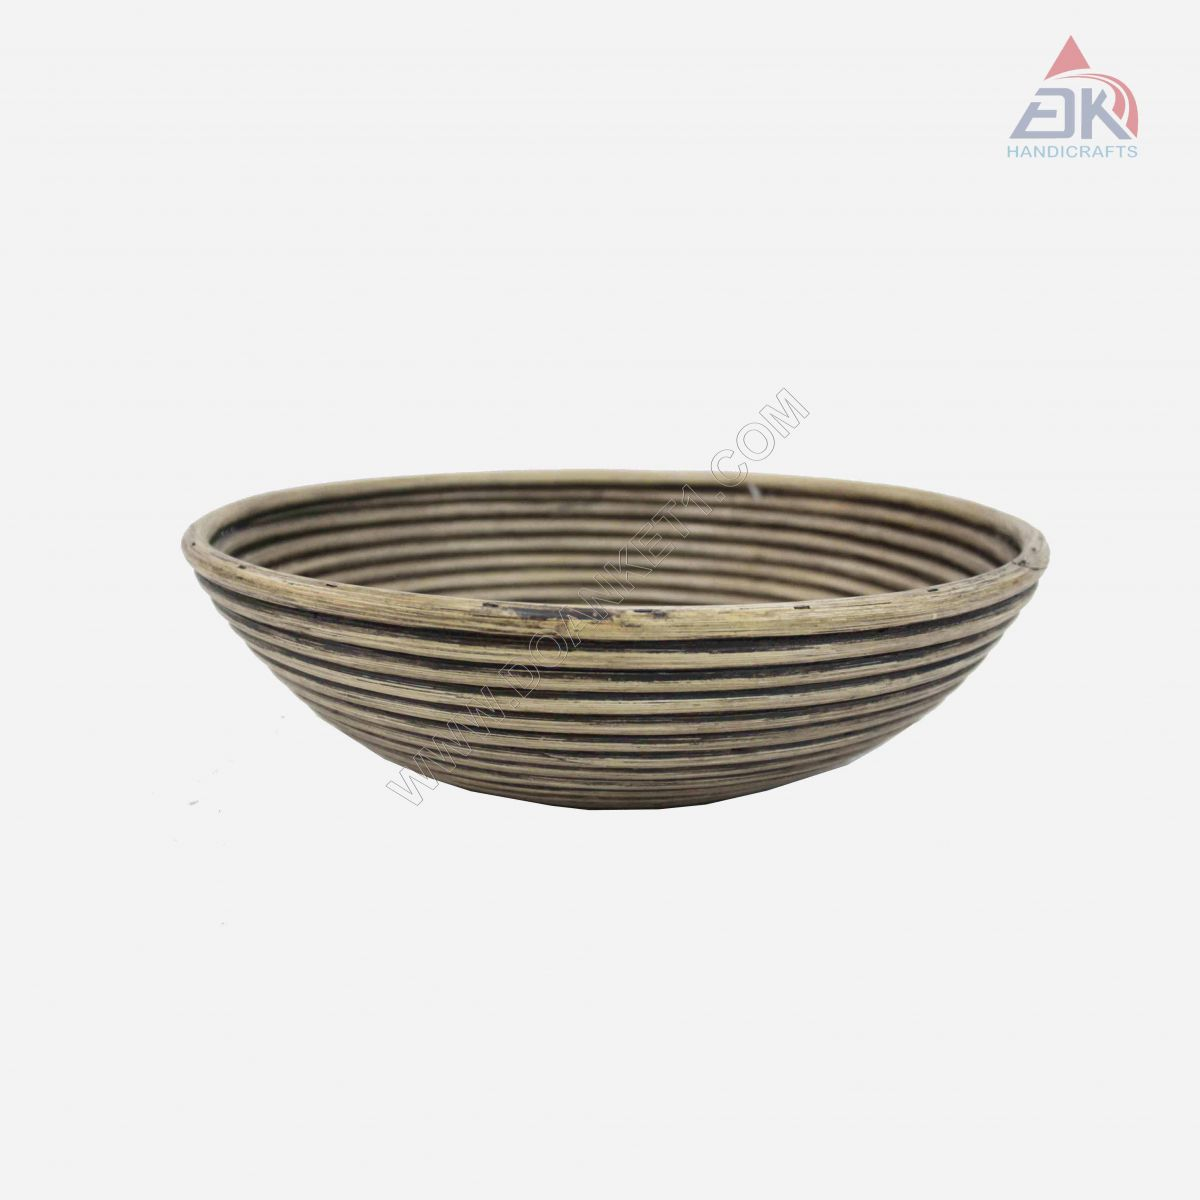 Coiled Bread Basket # DK37